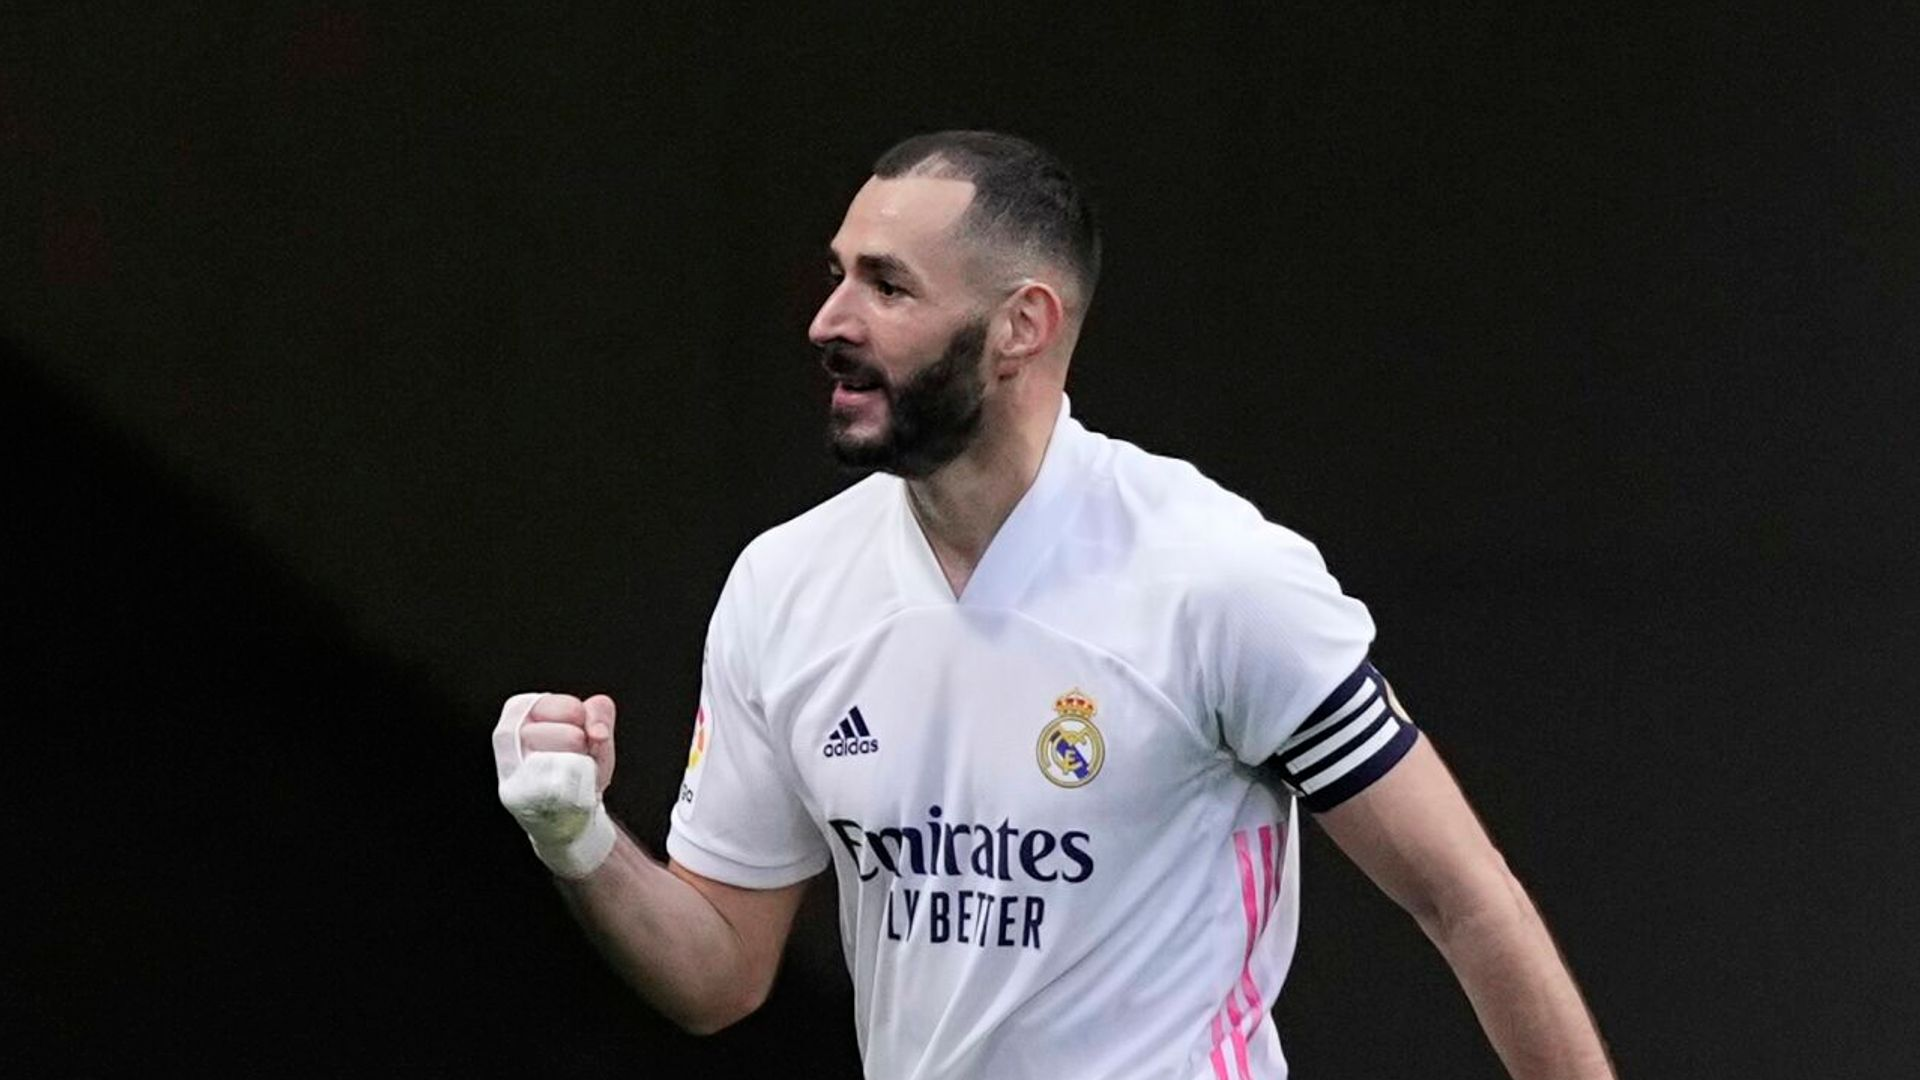 Europe: Benzema keeps Real in title race